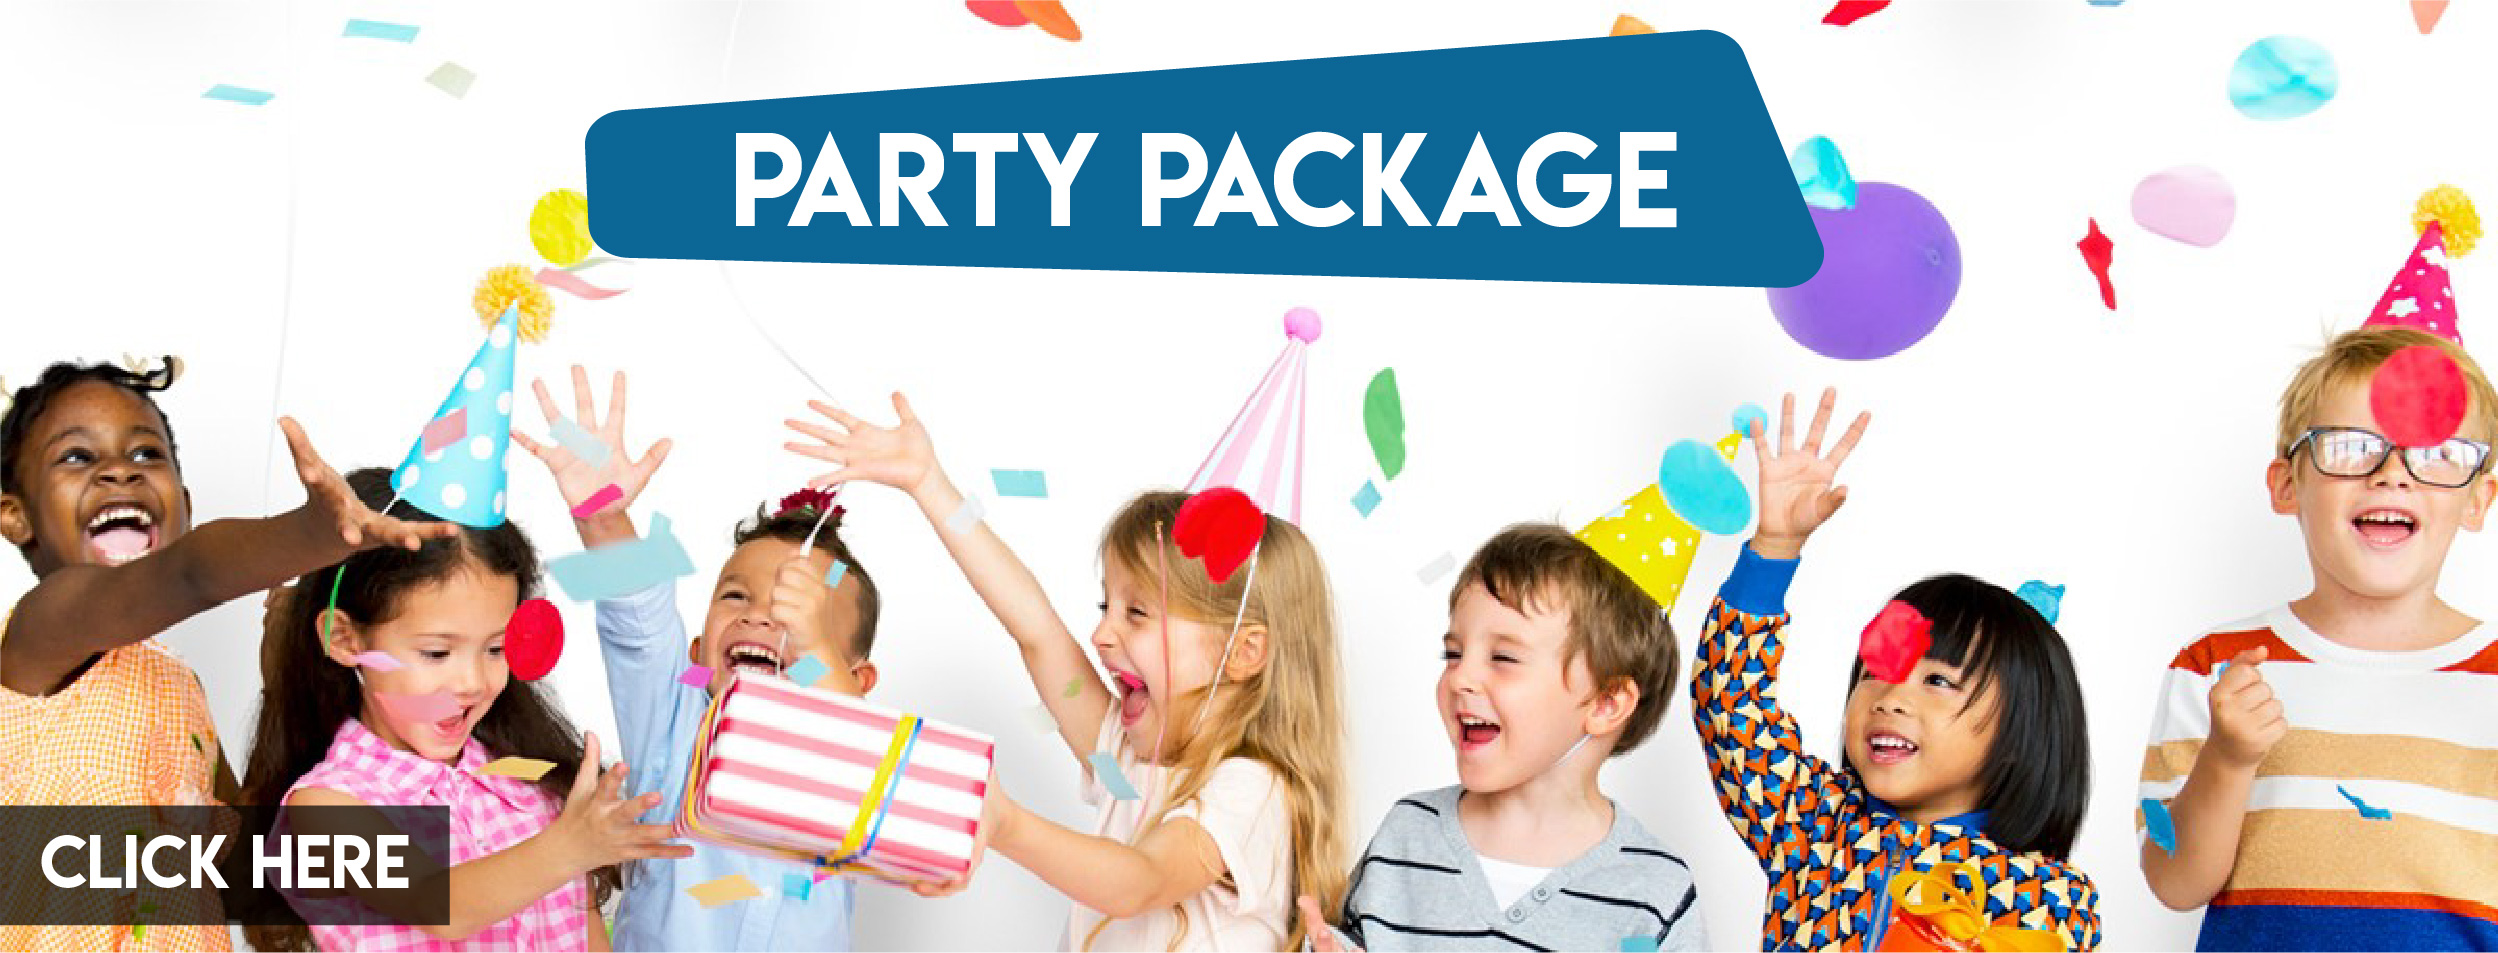 Party Package Details